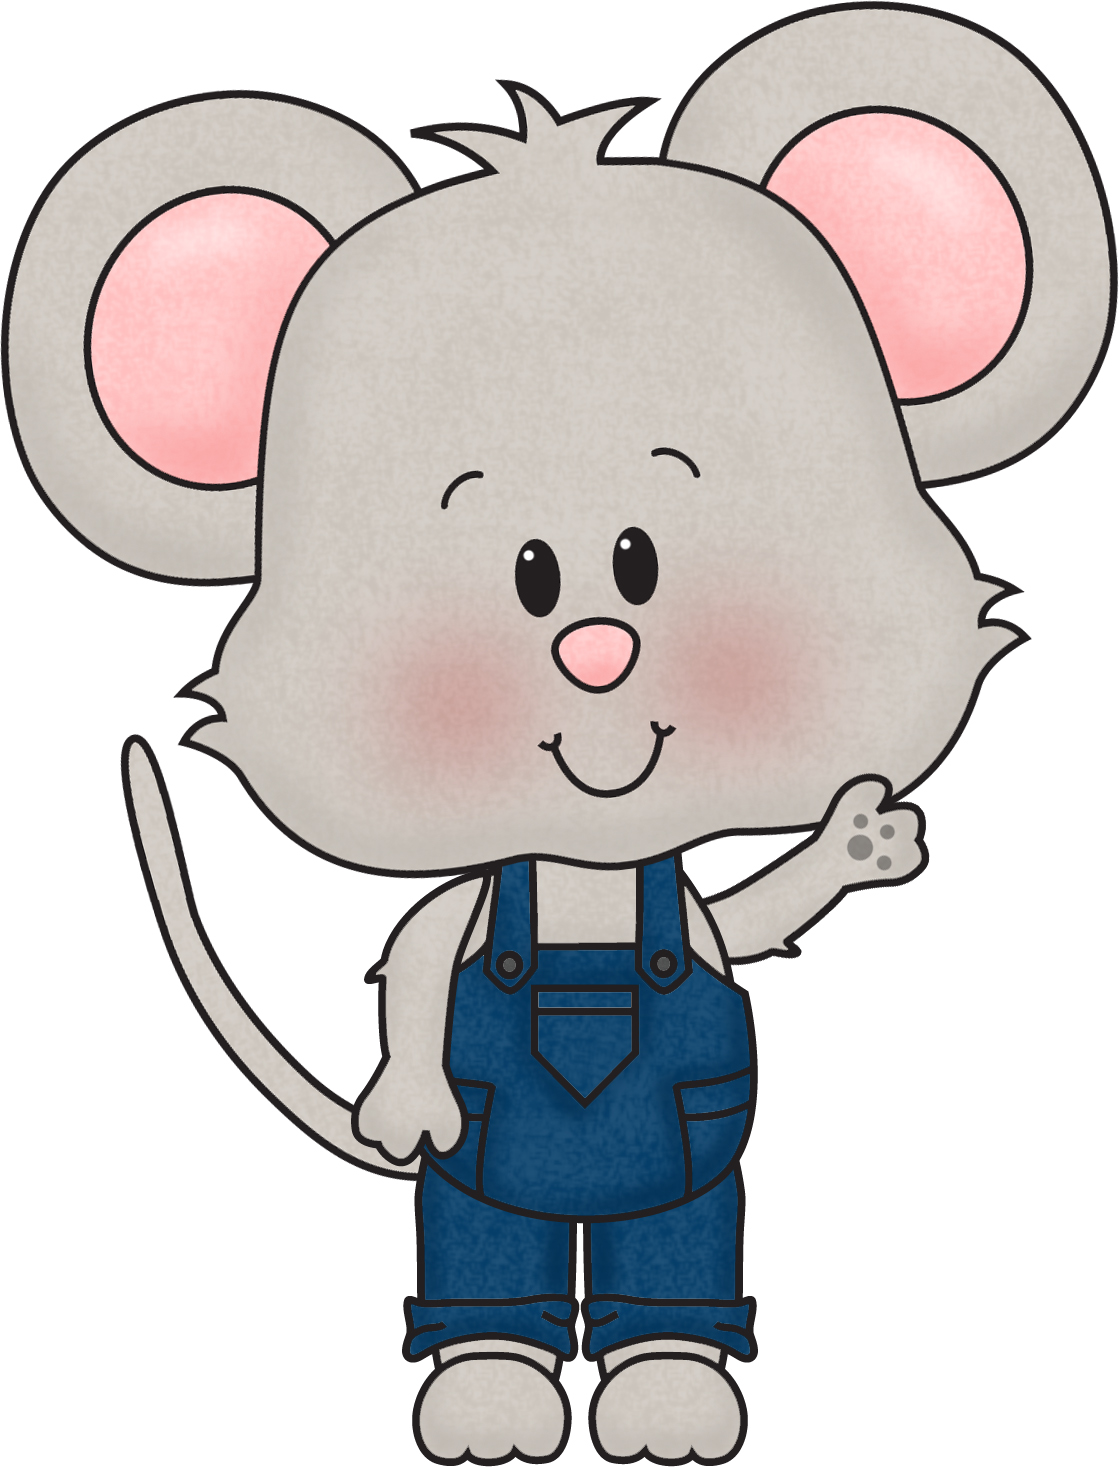 Mice clipart school. Free cute mouse cliparts